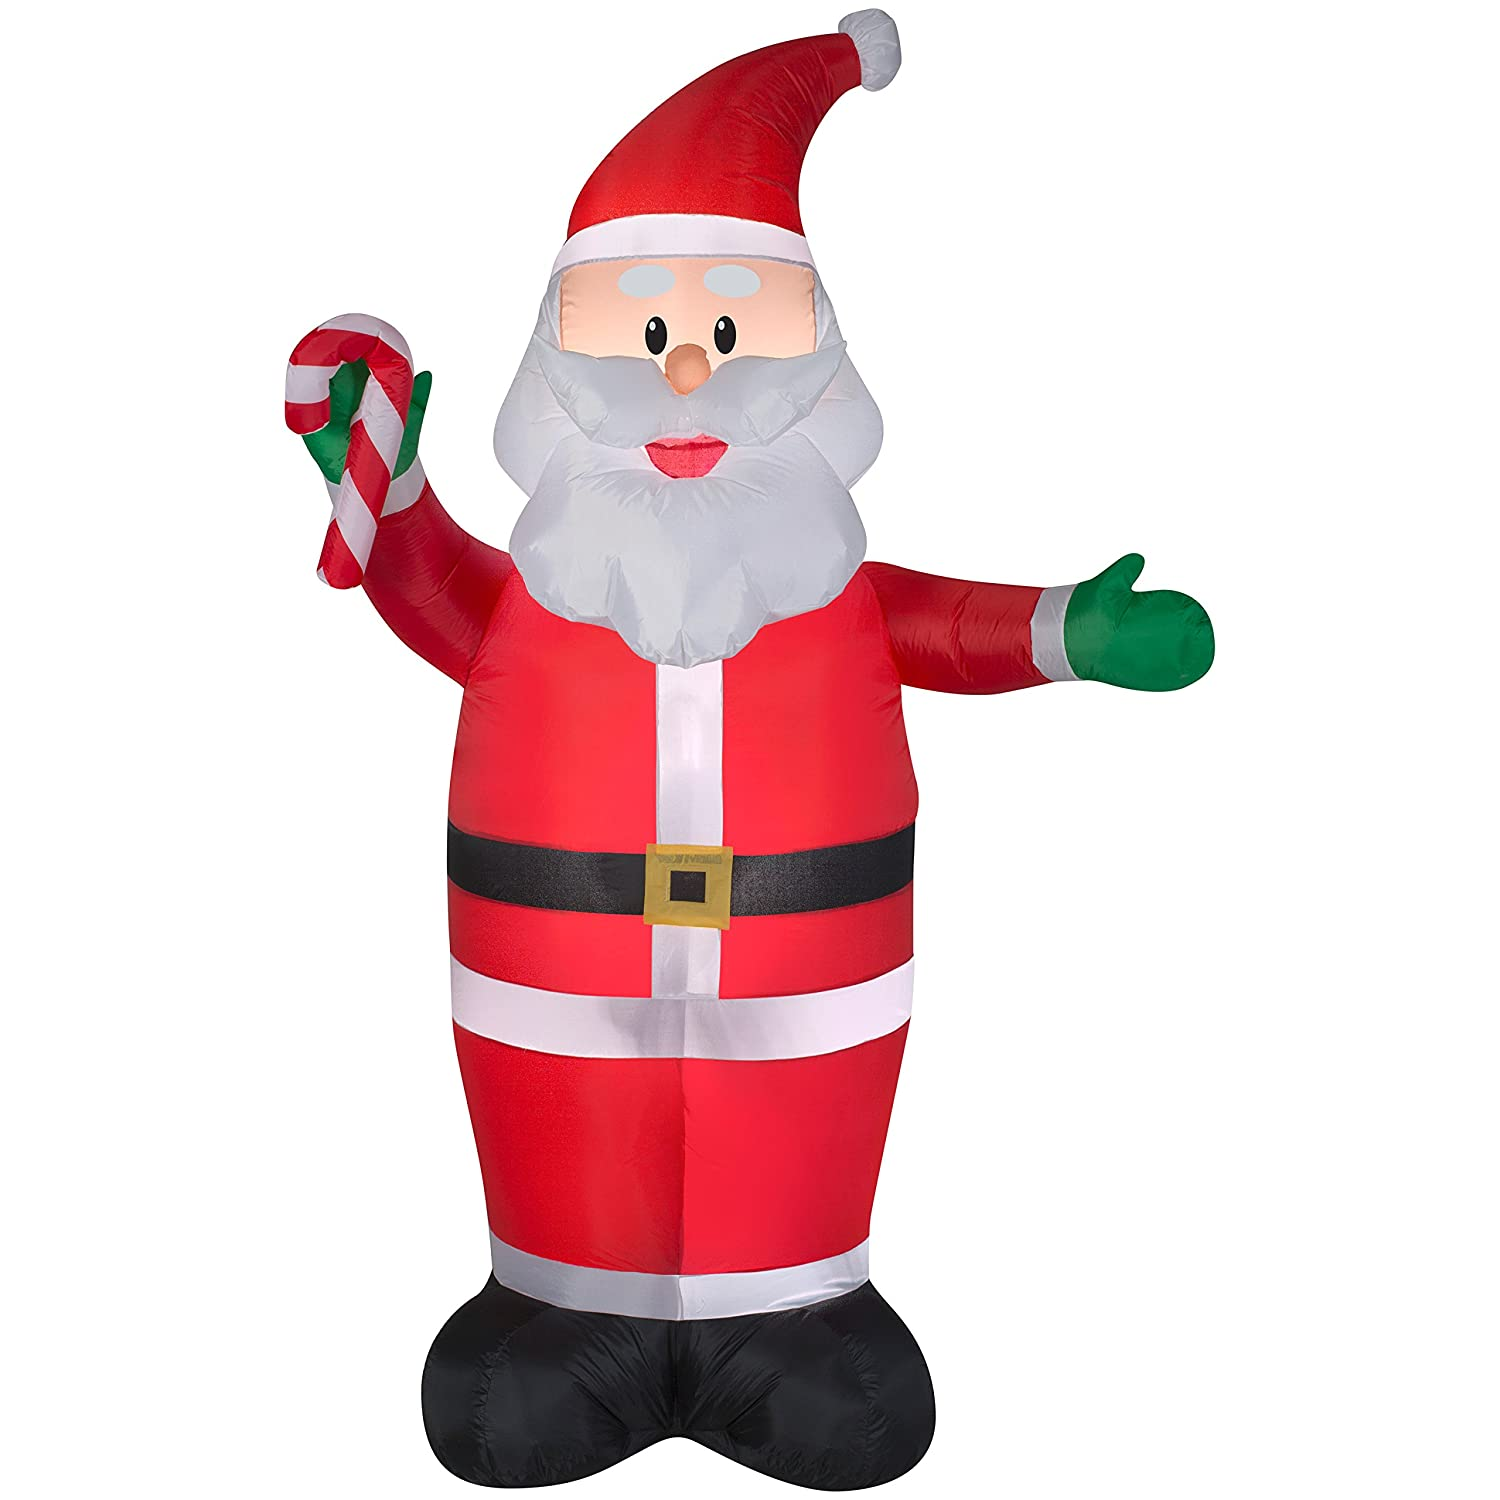 7 Ft. Tall Santa Clause Christmas Inflatable Lights Up Yard Decor Self-Inflates Home Accents Holiday